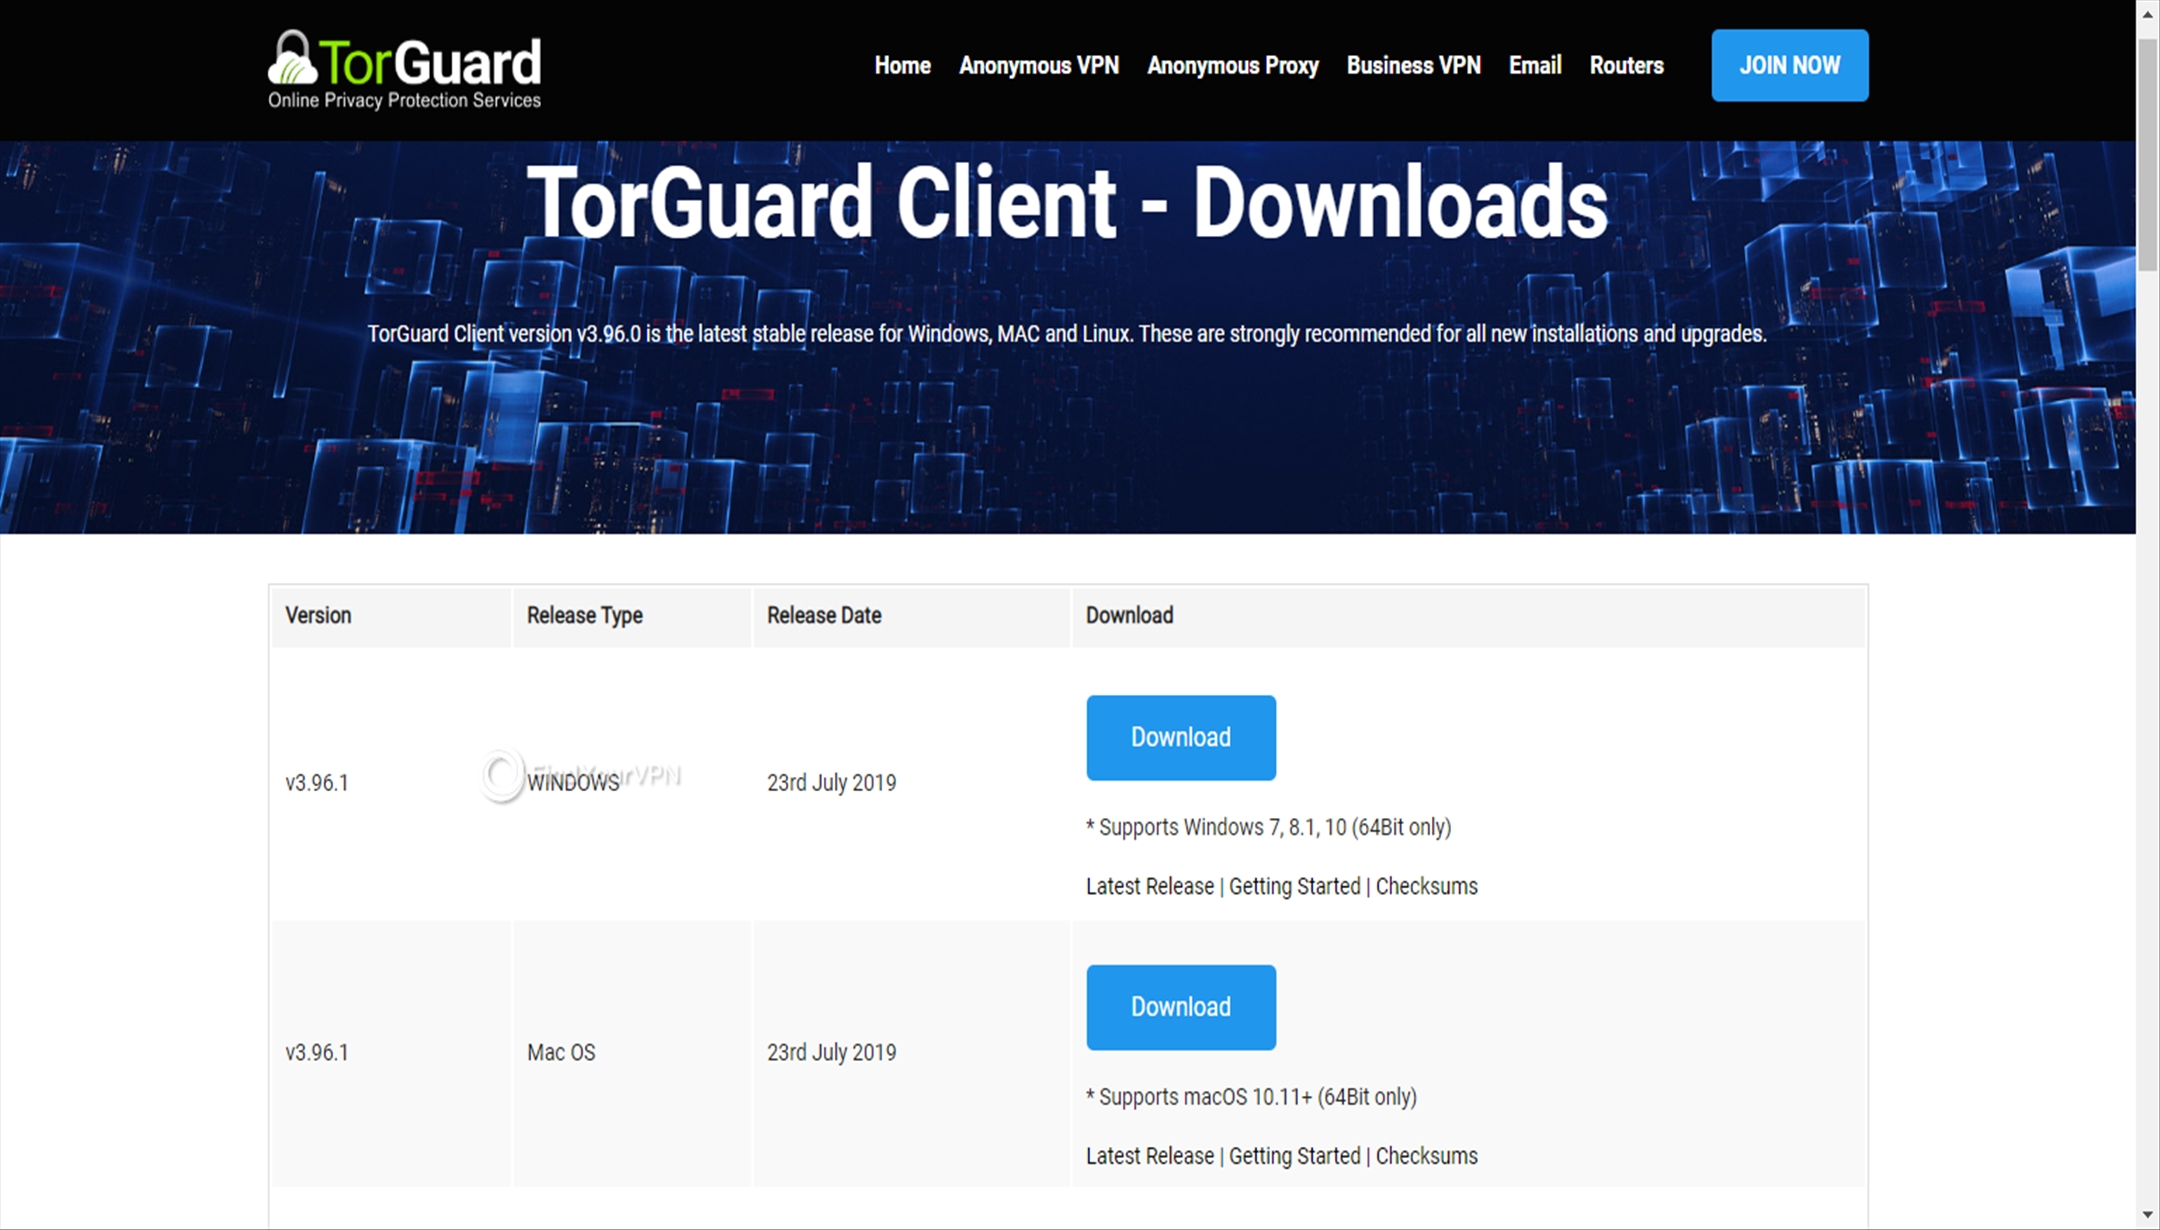 TorGuard works on several devices